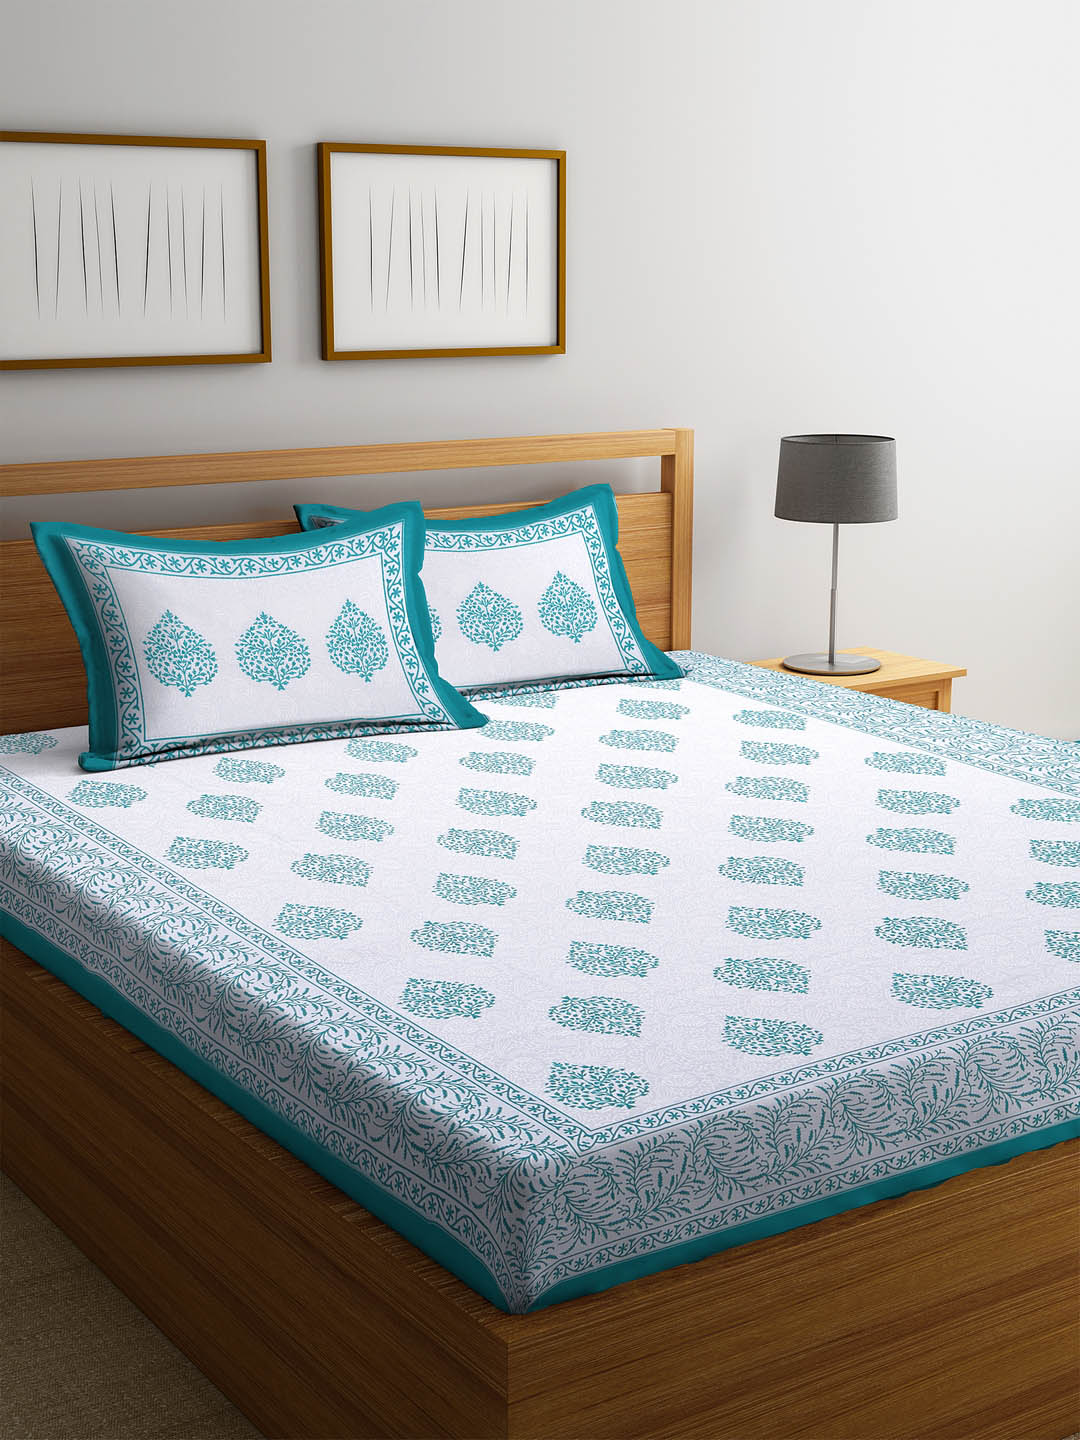 473945f278f Bedsheets - Buy Double   Single Bedsheets Online in India